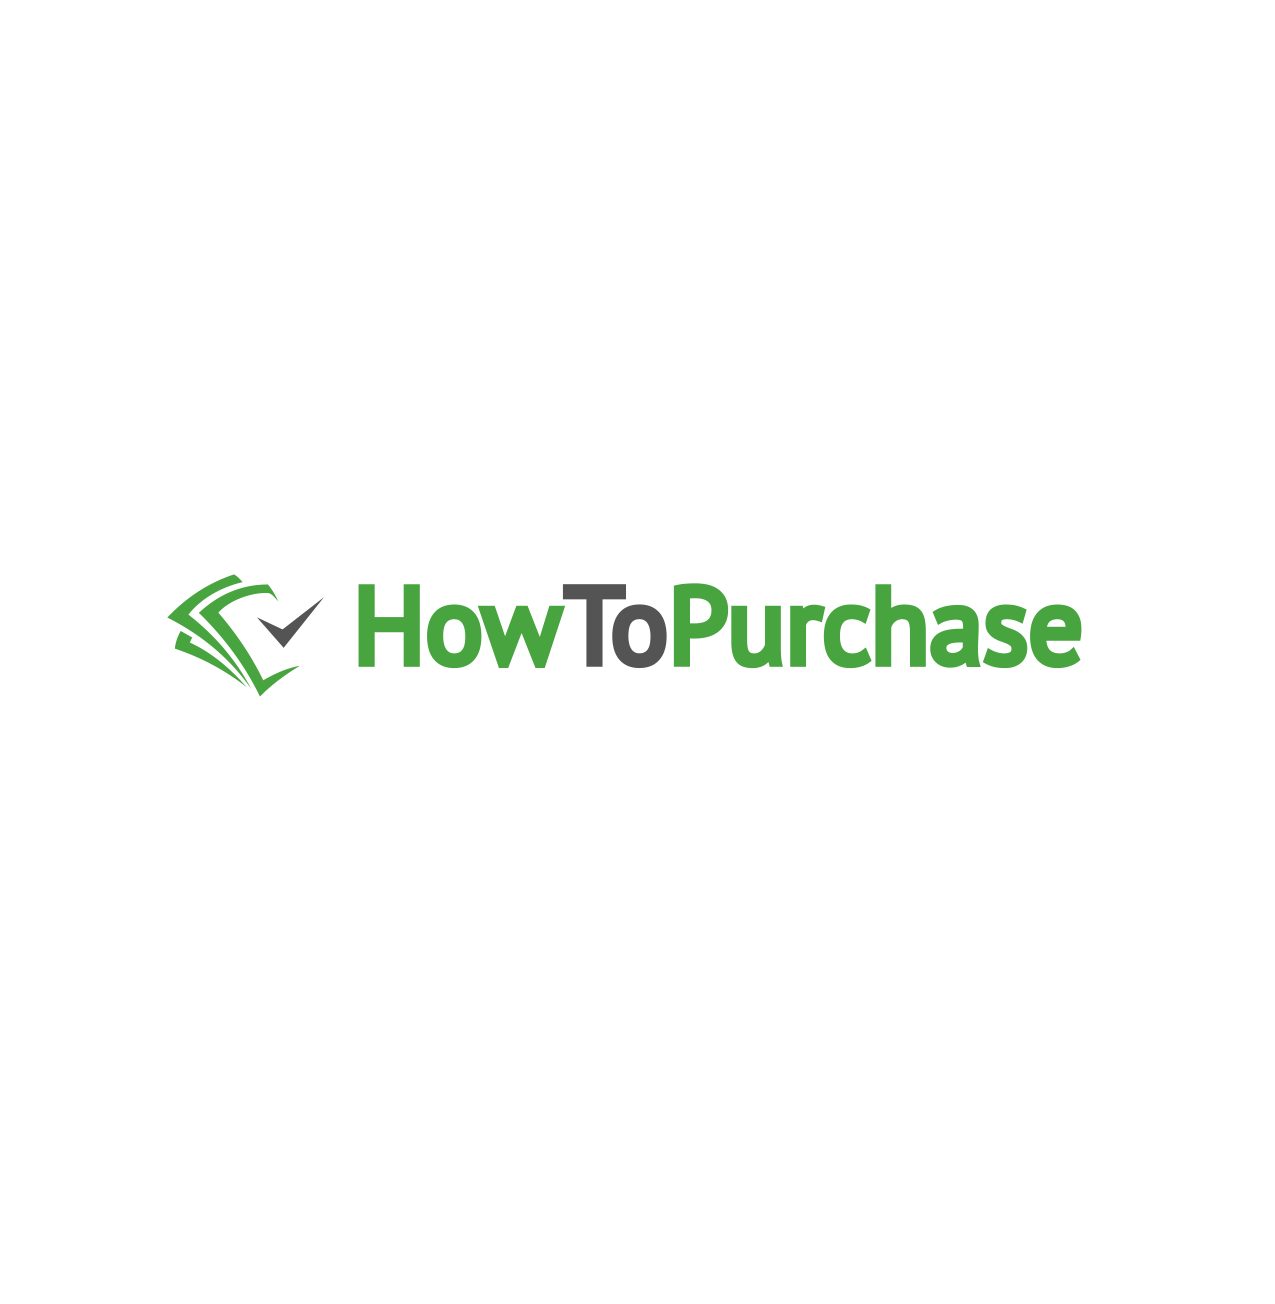 New logo wanted for HowToPurchase.com